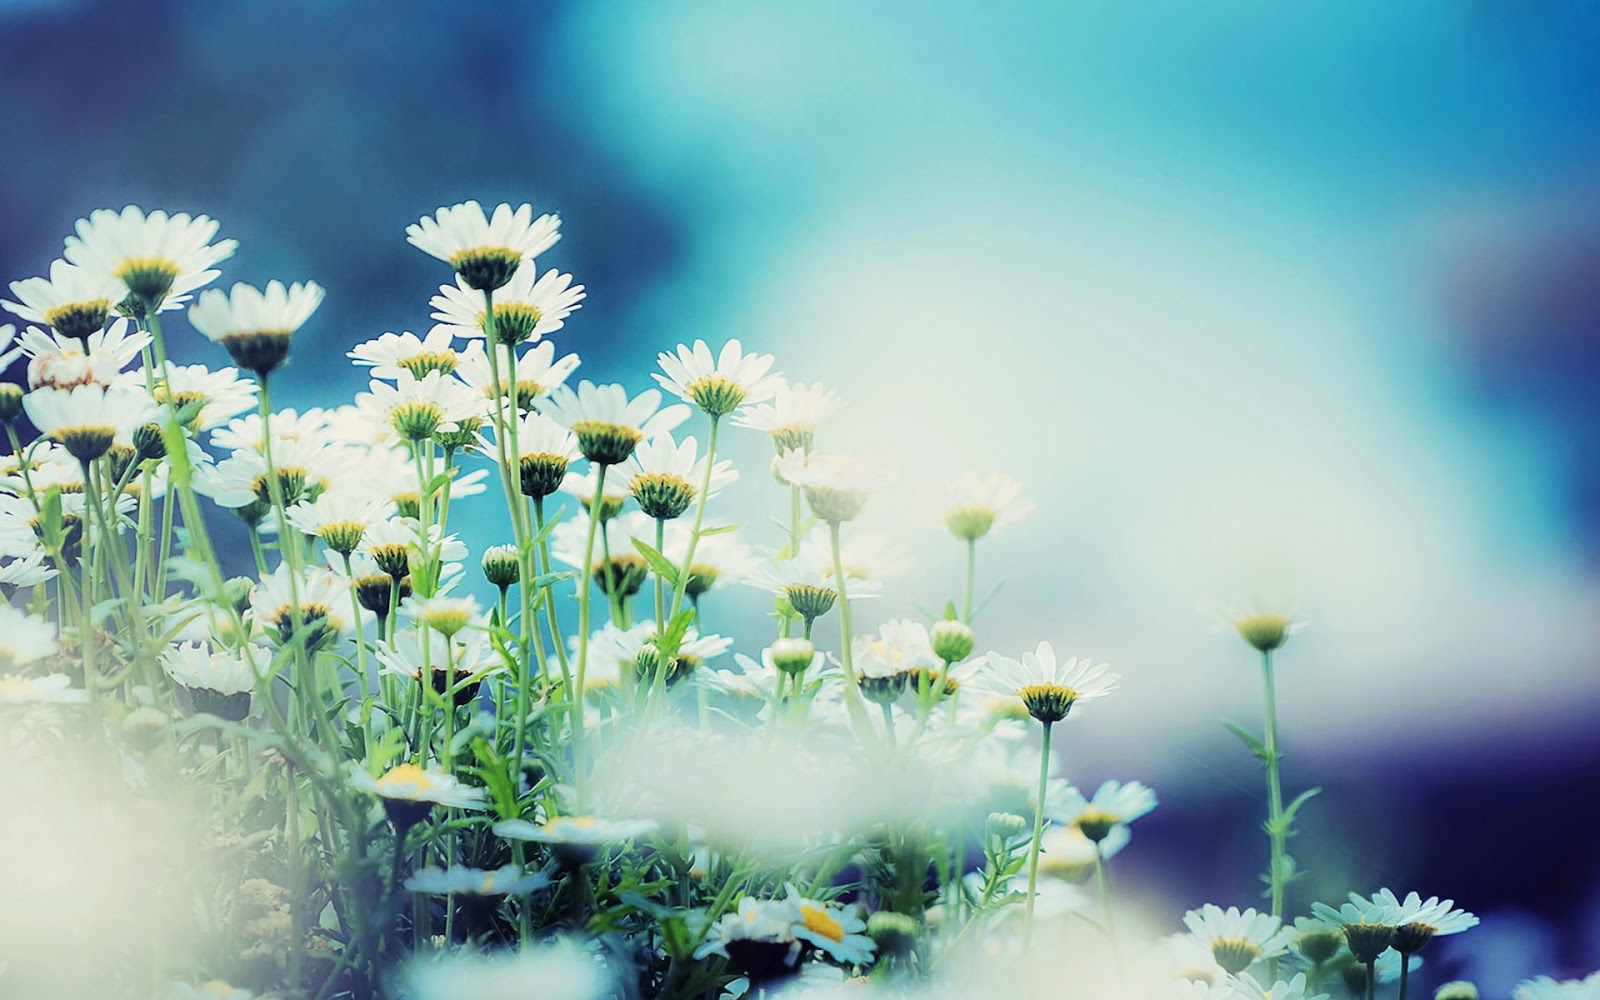 Daisy-flower-photo-album-free-download.jpg